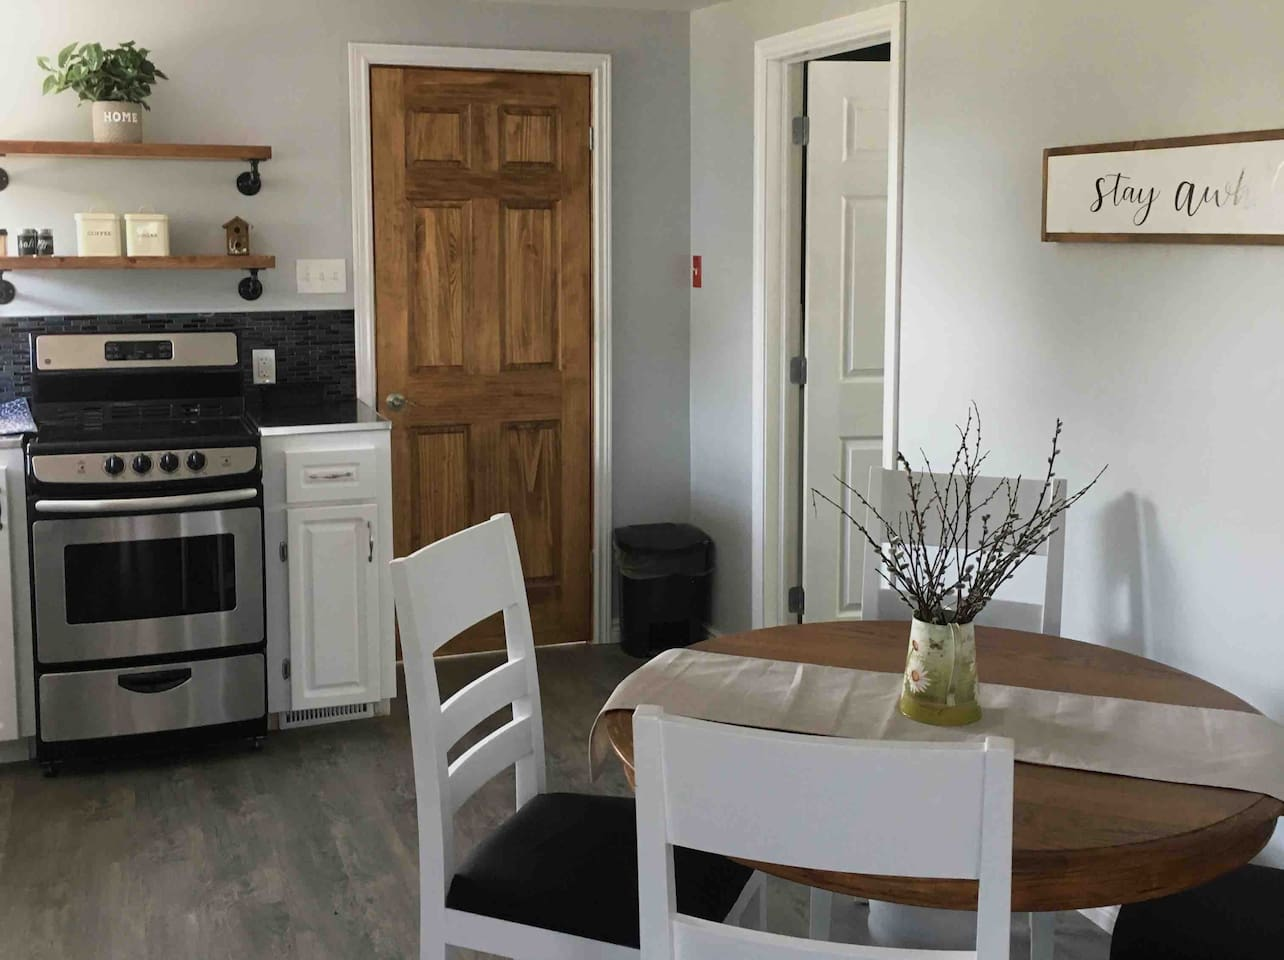 Main kitchen and eating area - fully equipped with new appliances